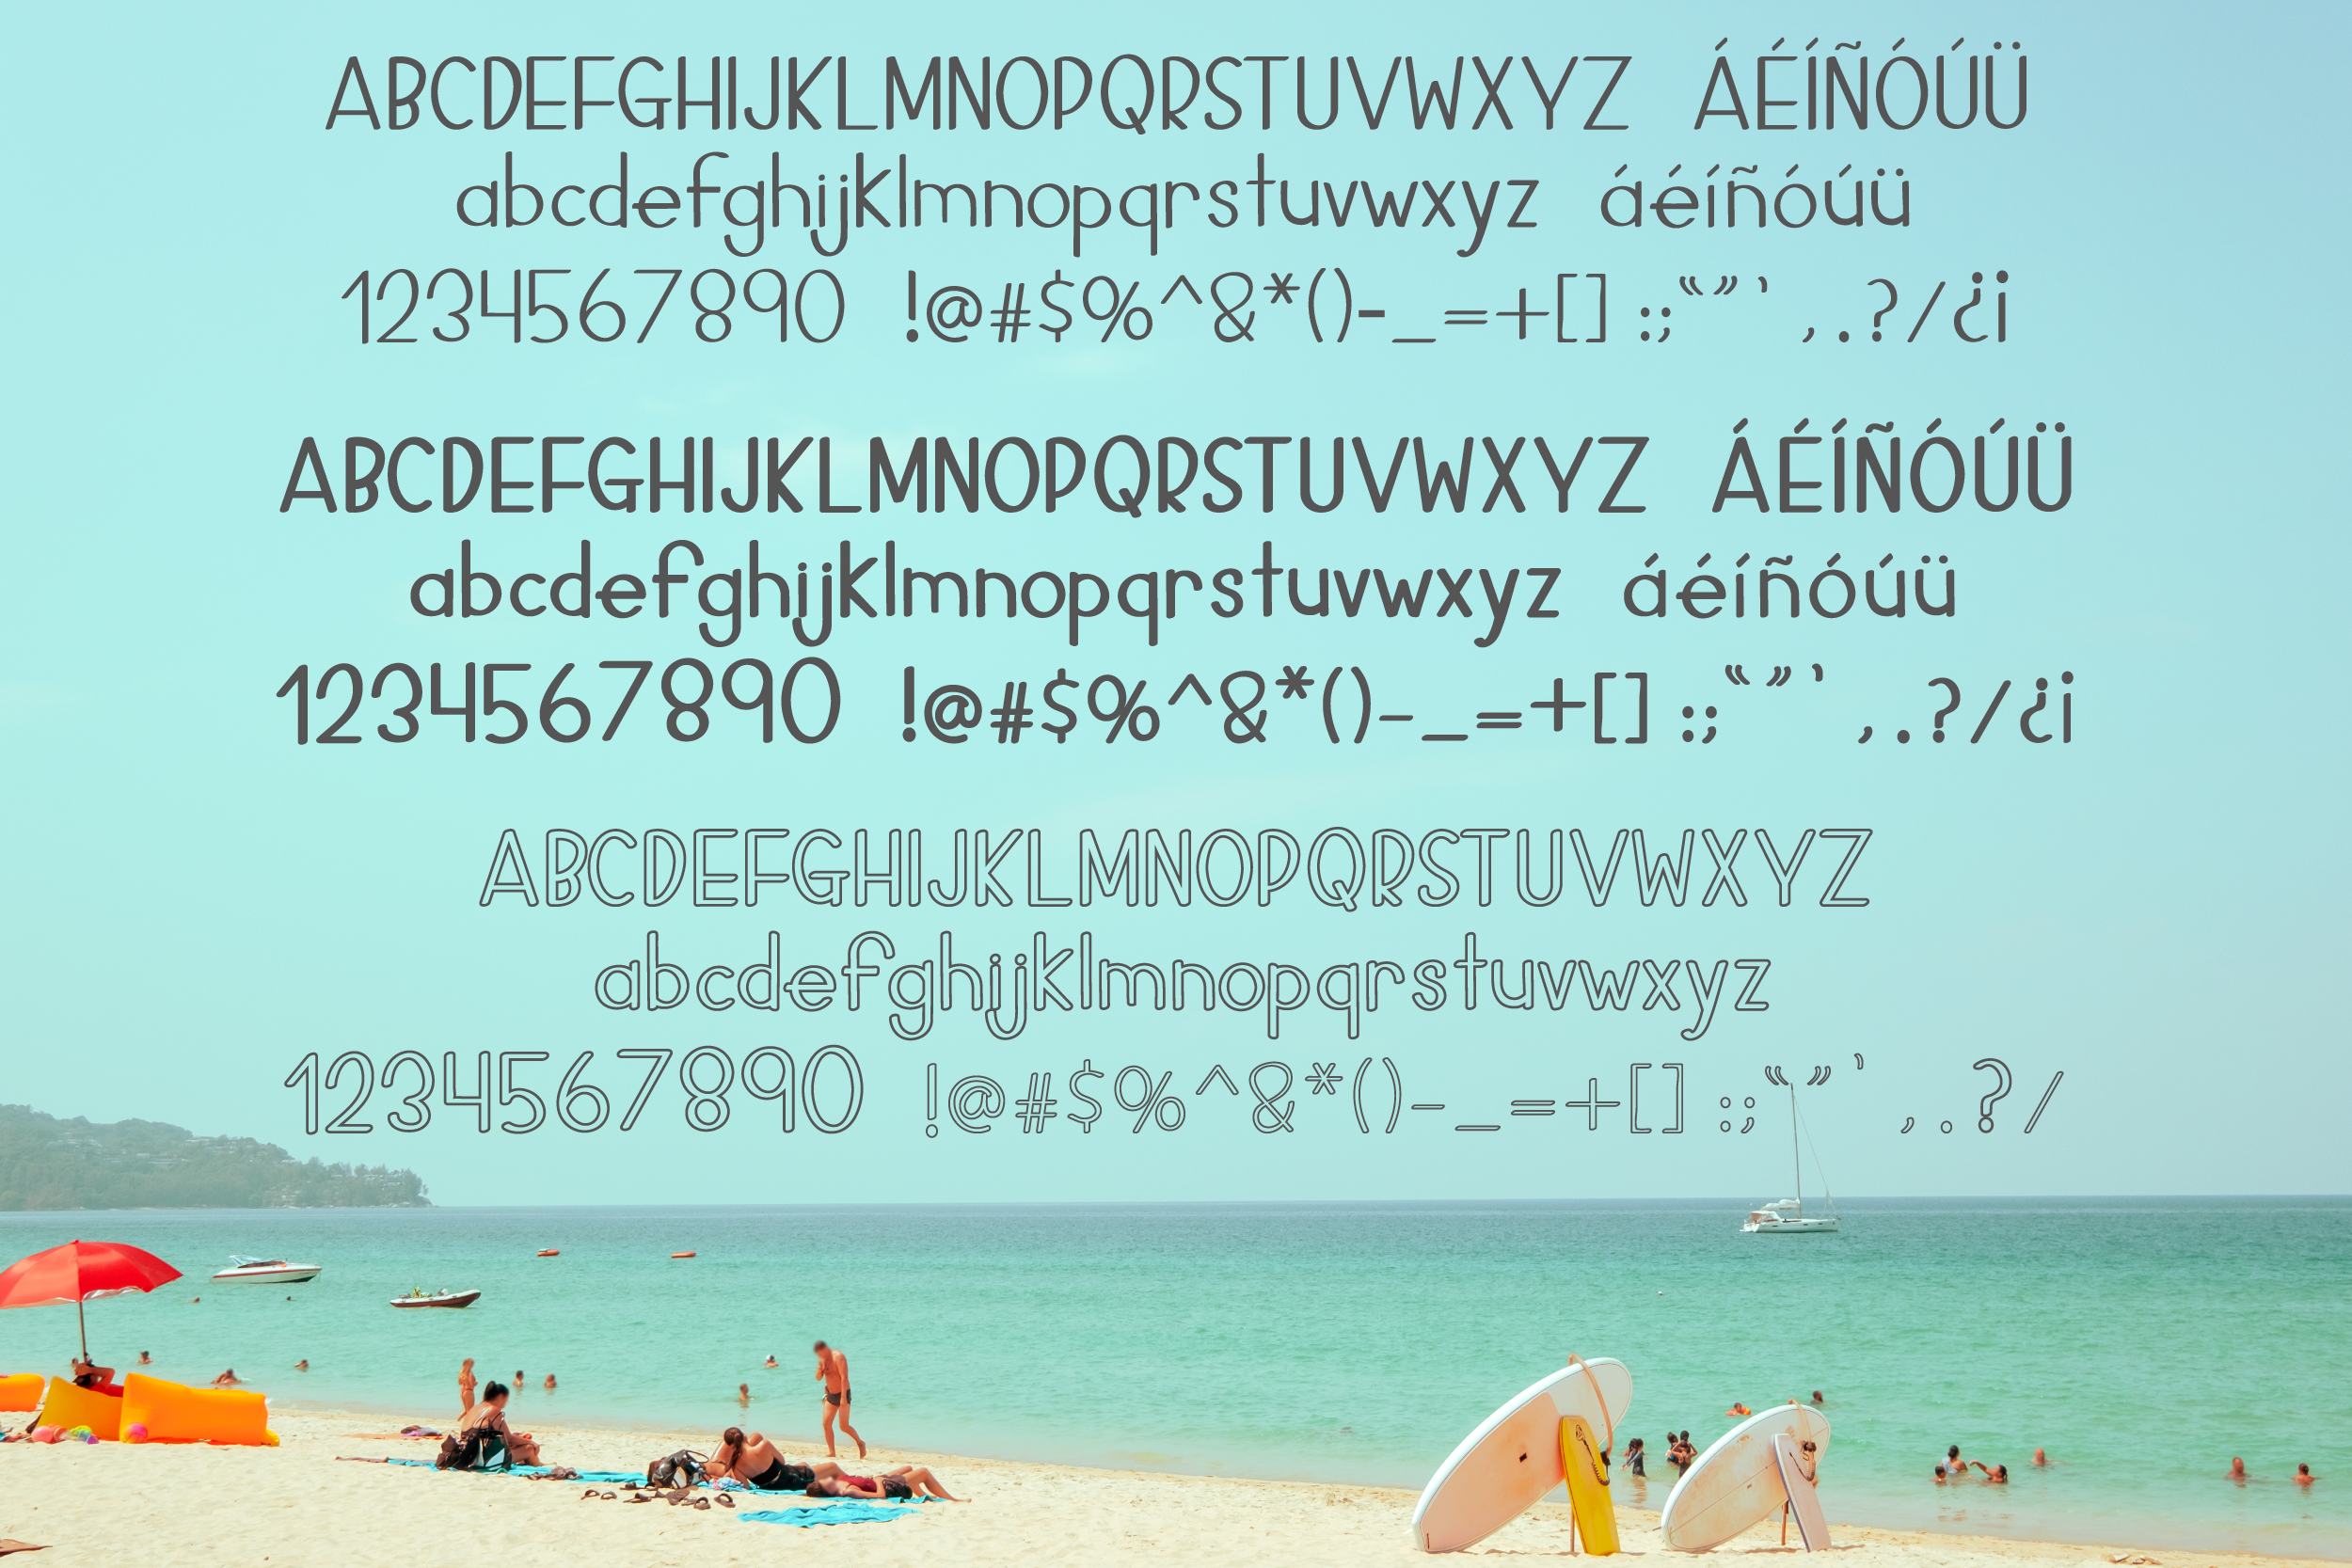 Top Heavy - 3 Large Top Fonts Included! example image 2